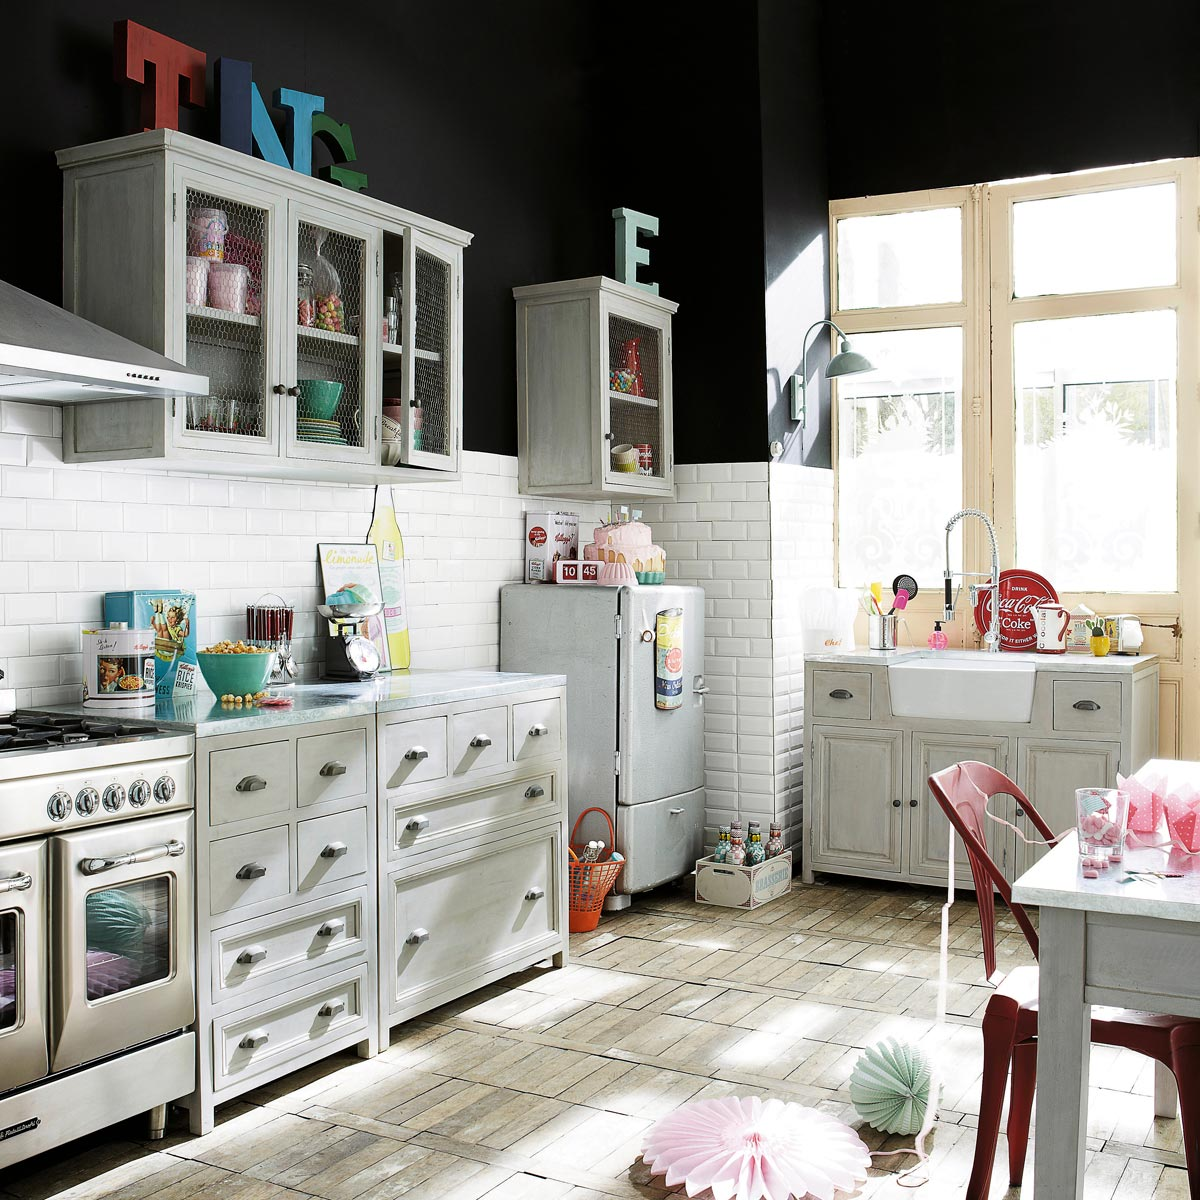 cucine maison du monde accessori e mobili in stile shabby foto. Black Bedroom Furniture Sets. Home Design Ideas